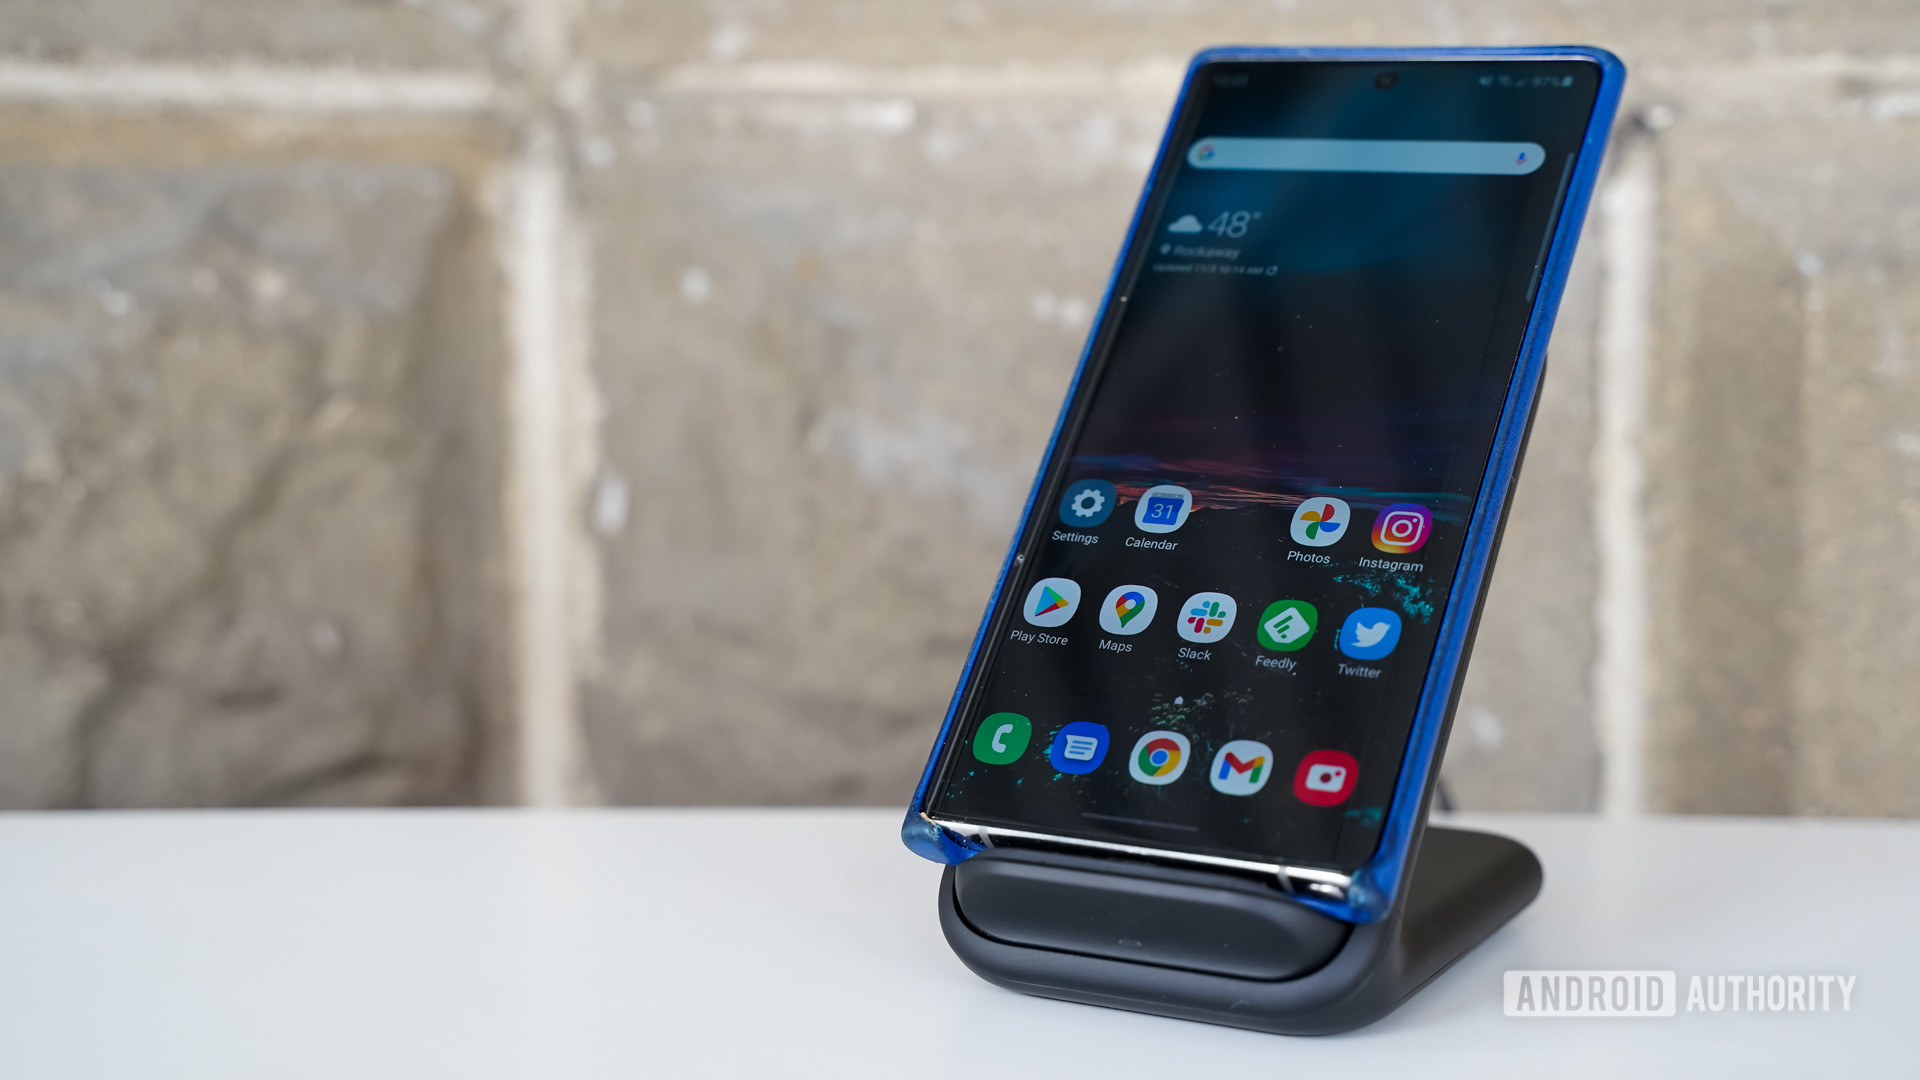 Samsung Wireless Charger Stand with phone